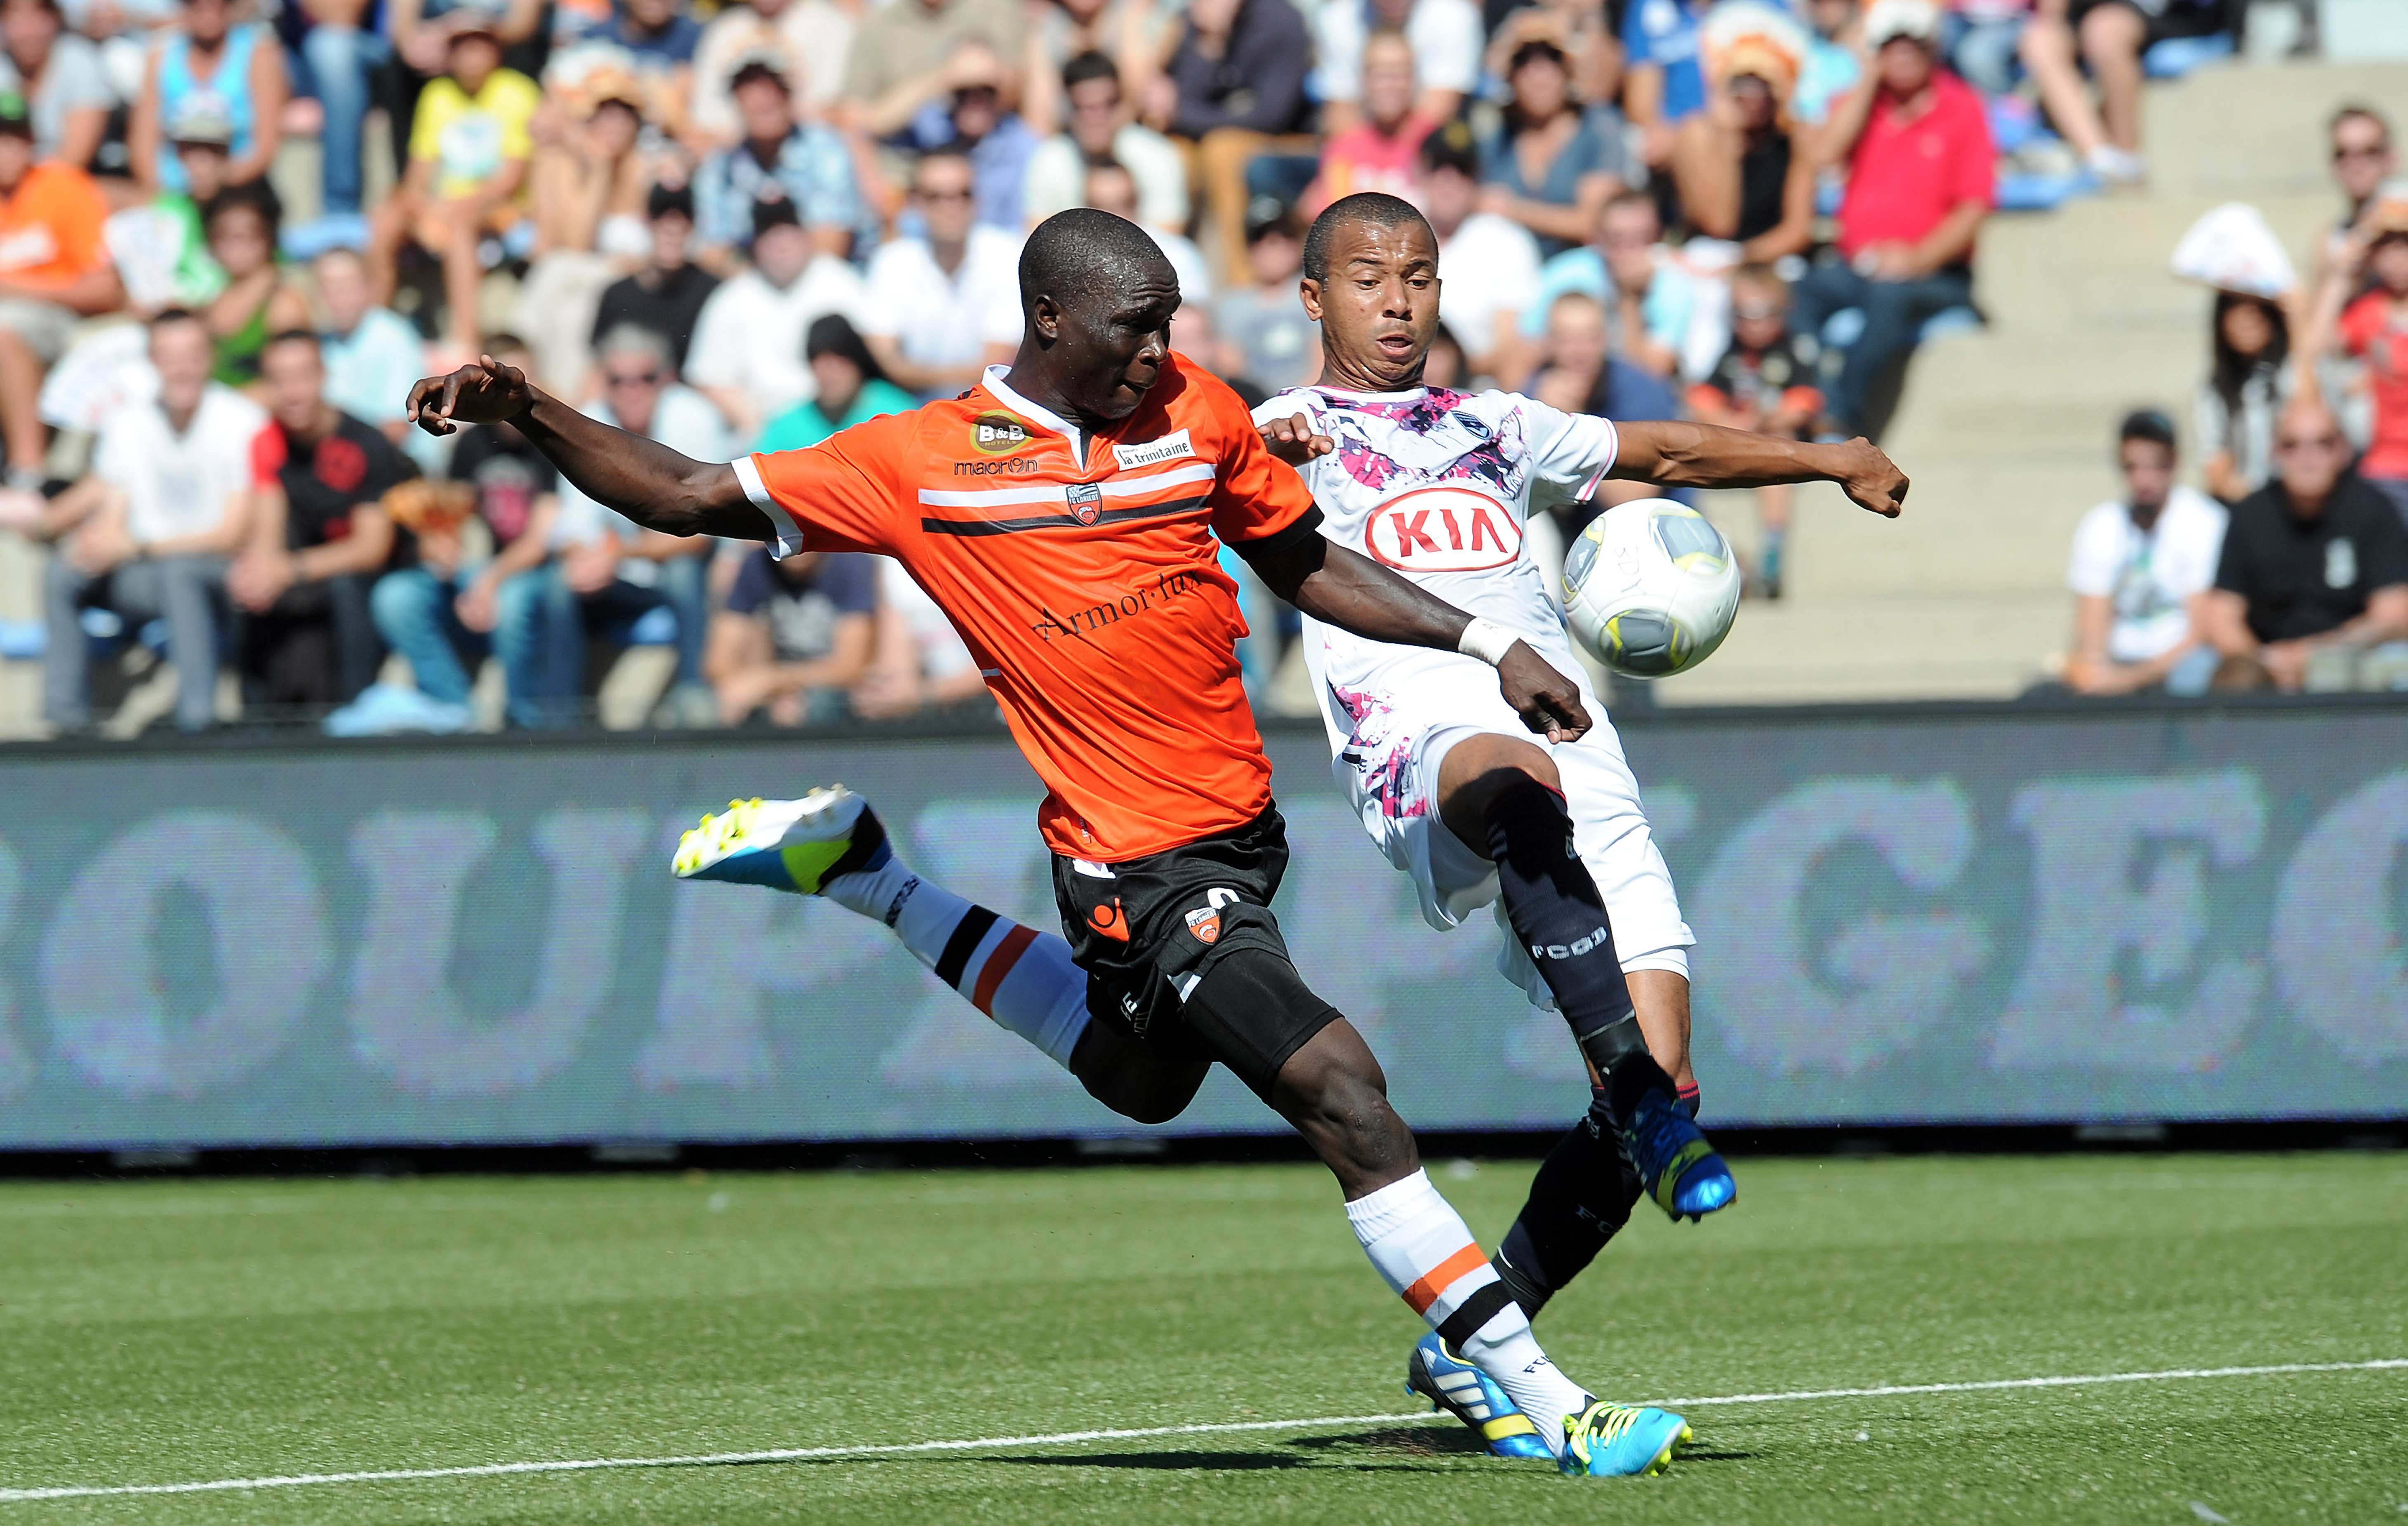 FOOTBALL : Lorient vs Bordeaux – Ligue 1 – 22/09/2013